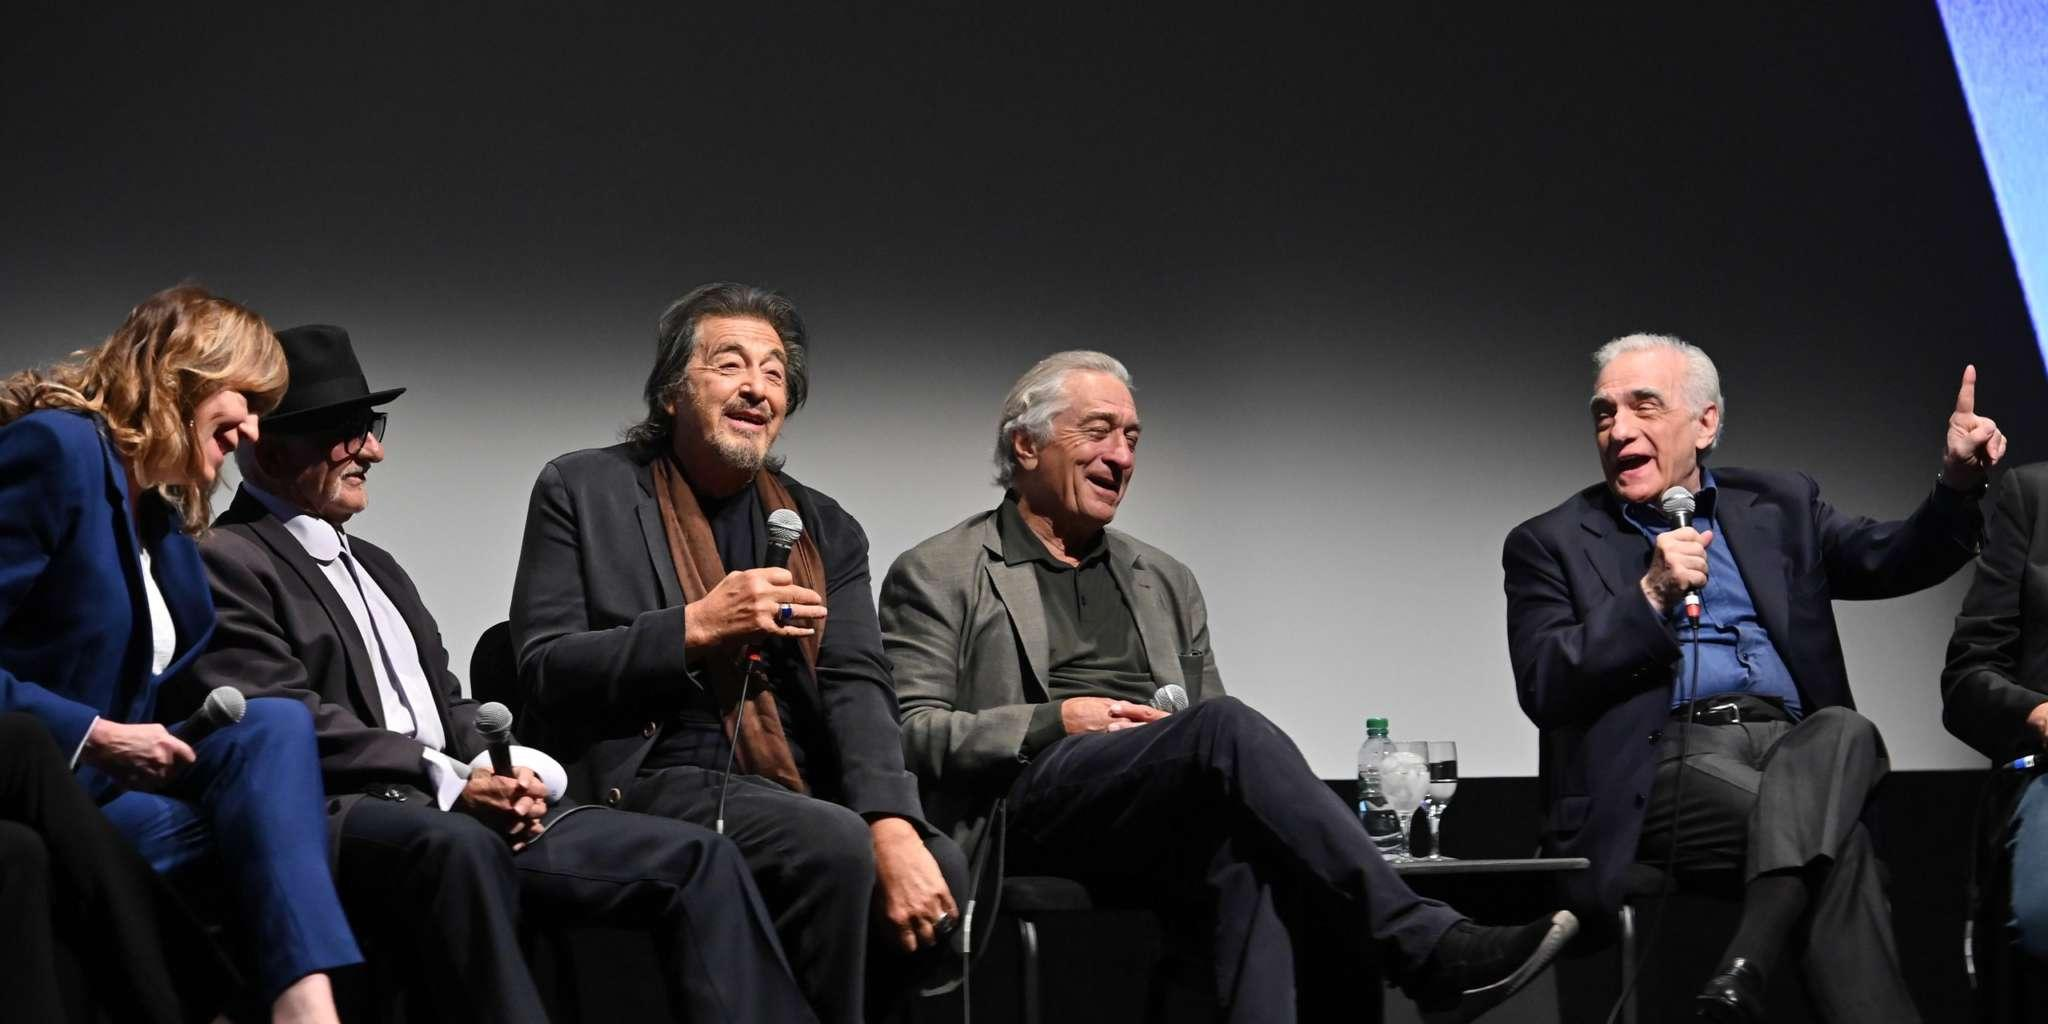 The Irishman Is A Hit -- But Netflix Culture Wants To Make It A Series Due To 3 Hour Run Time